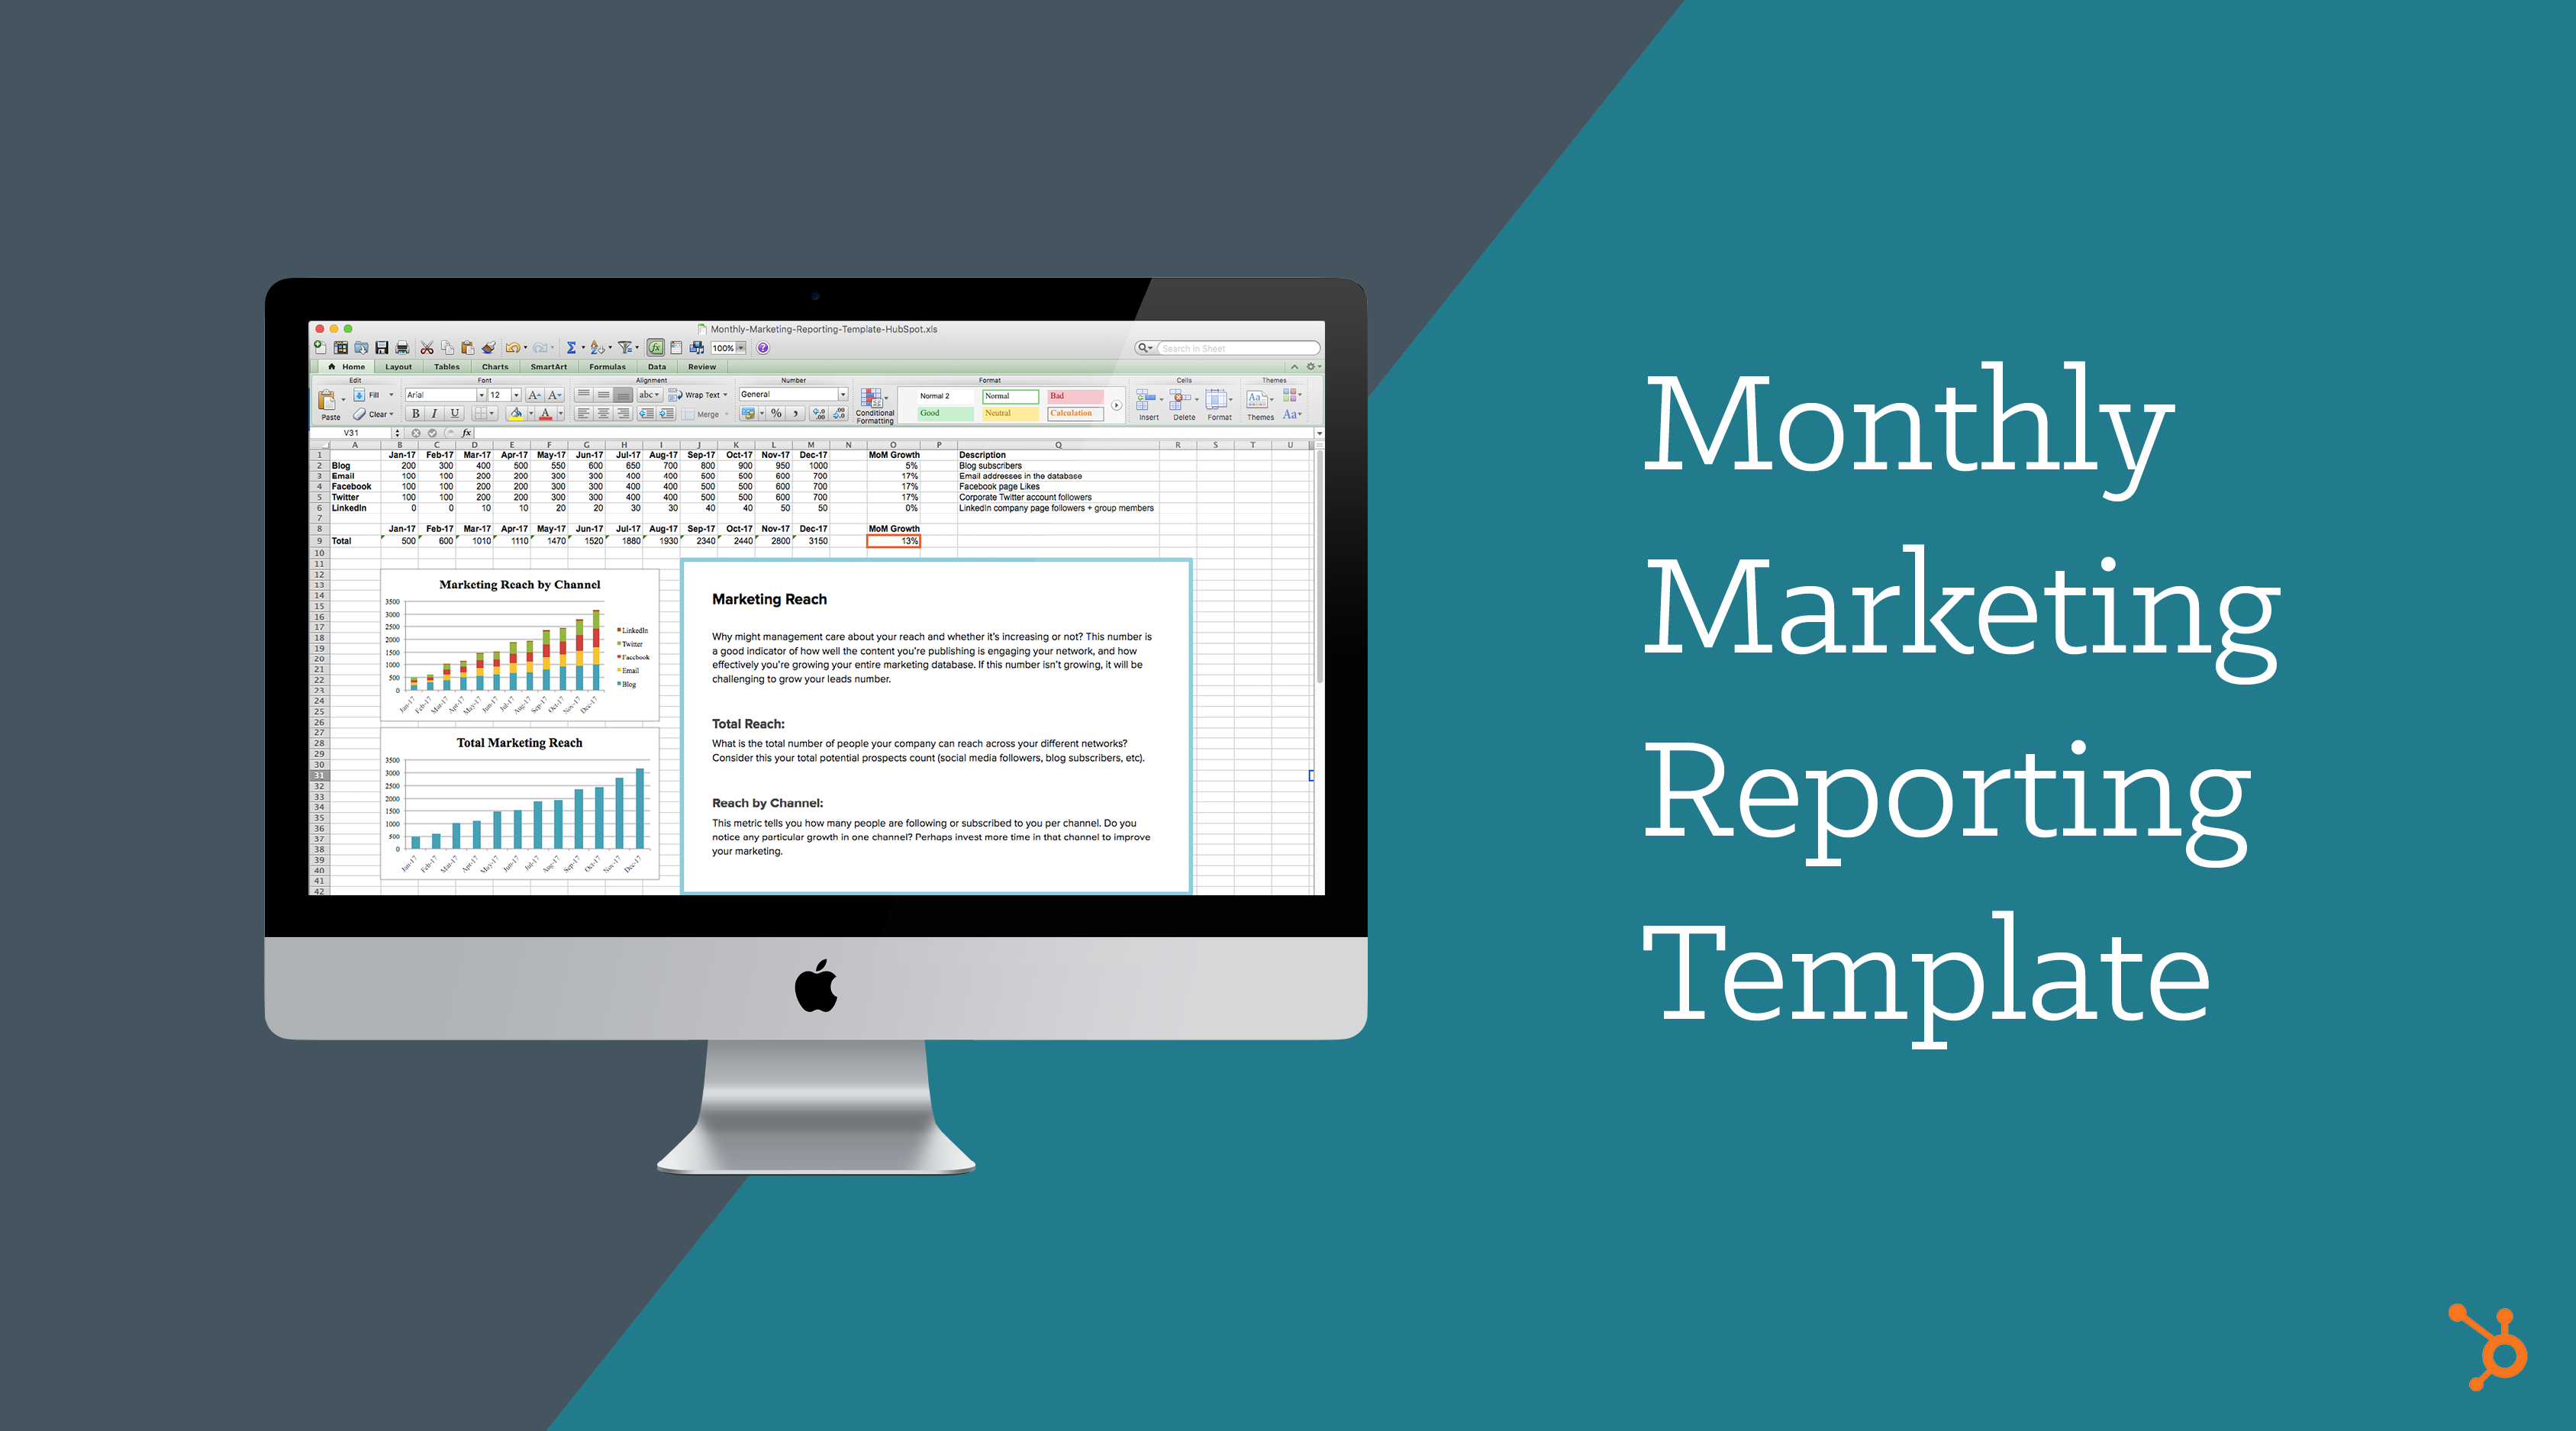 Monthly Marketing Reporting Template | Free Download  Daily Performance Report Format